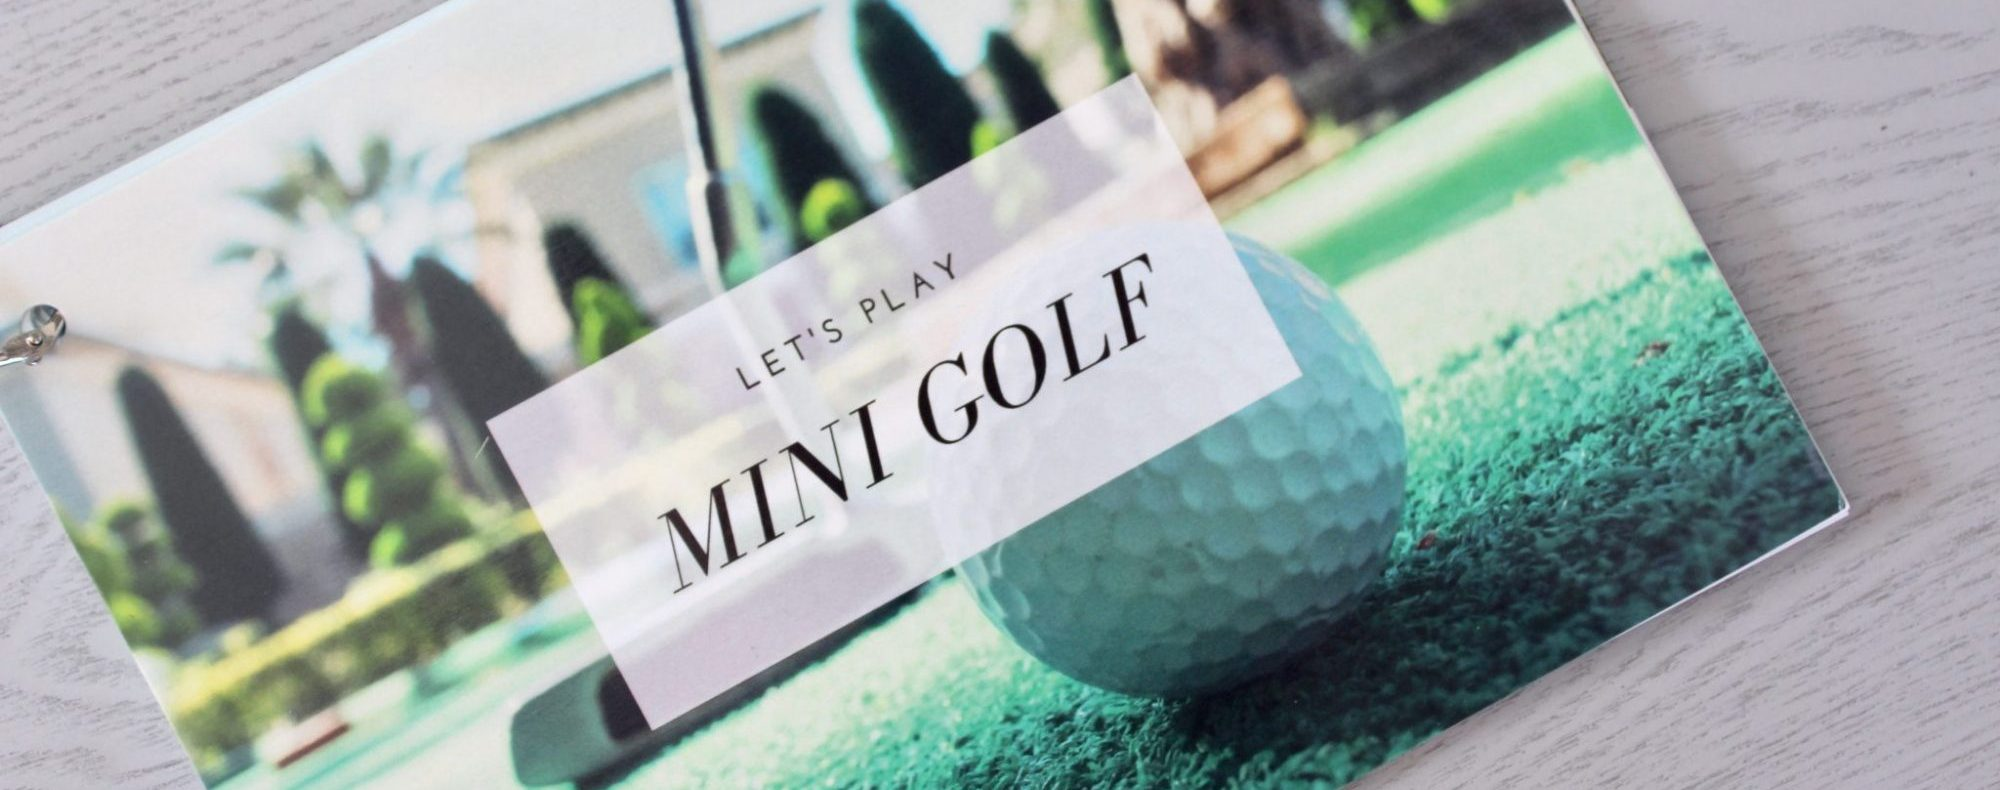 Go Date Myself - Mini-Golf-Starter Kit - Instructions - Cropped